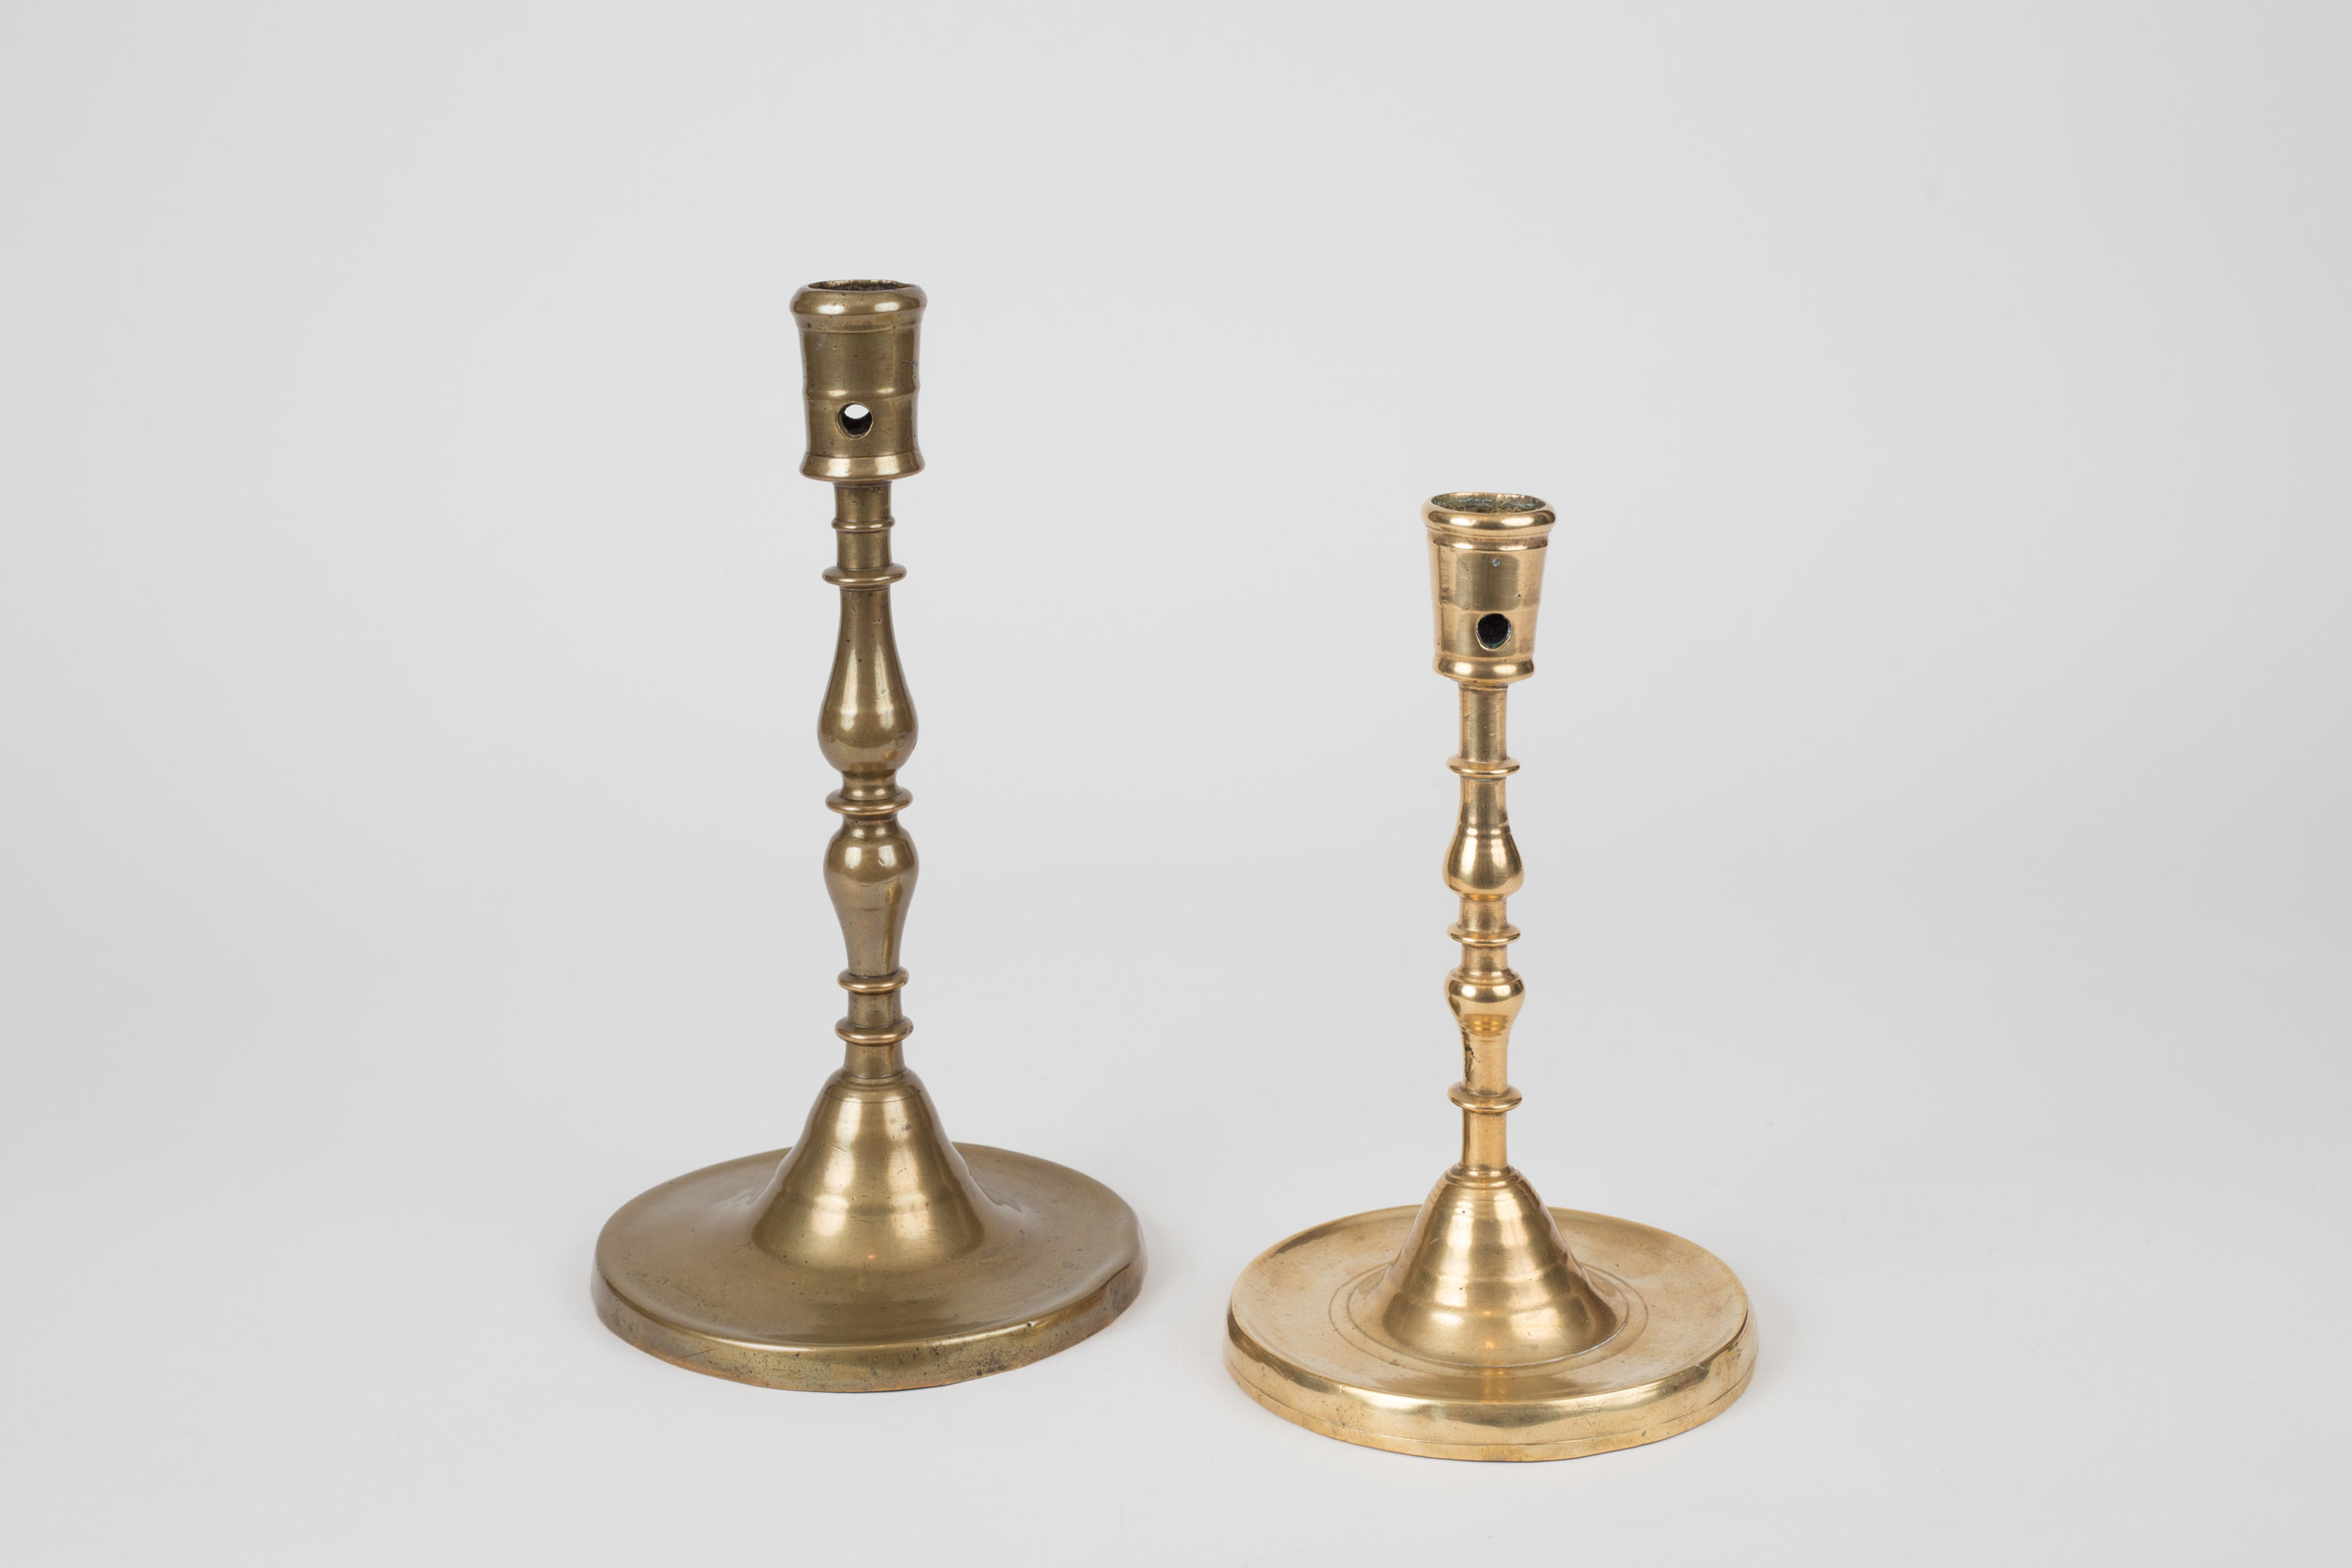 Imposing Candlestick 3